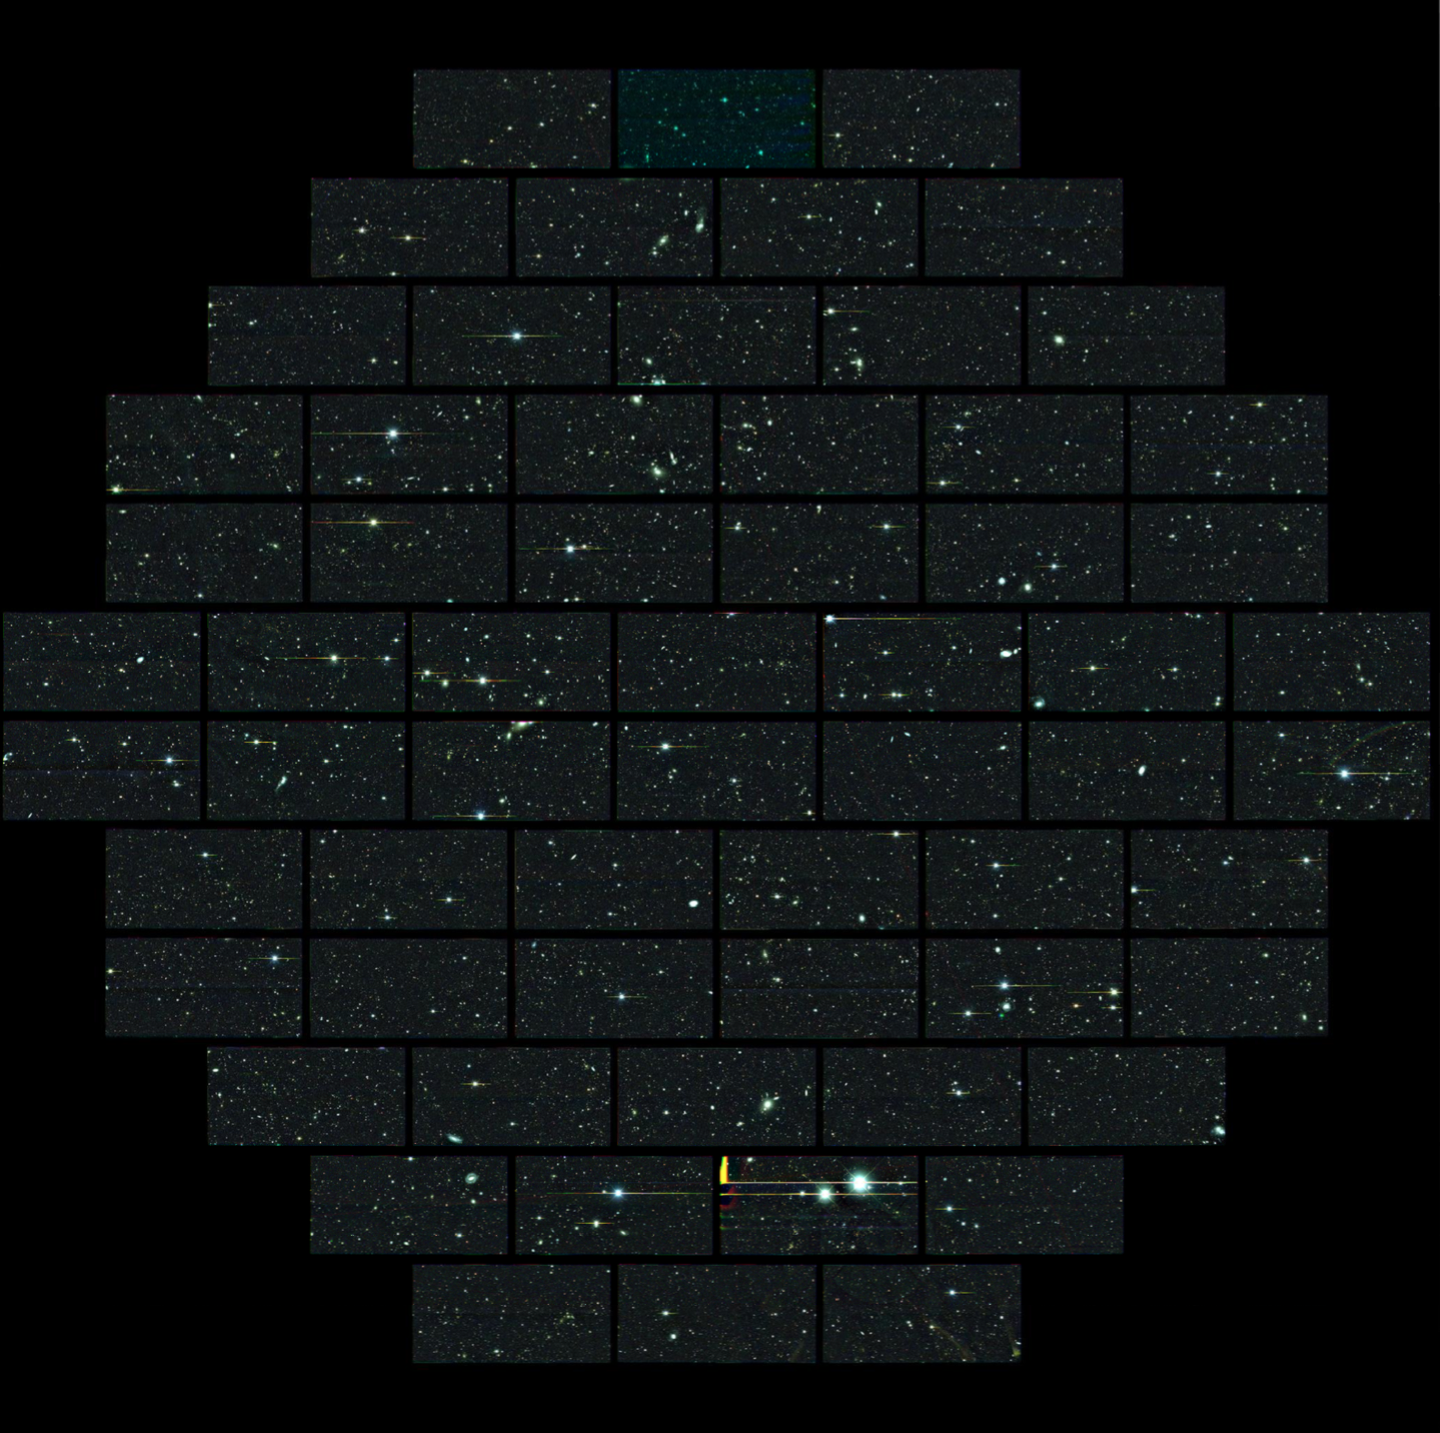 The Dark Energy Survey and operations: Year 1